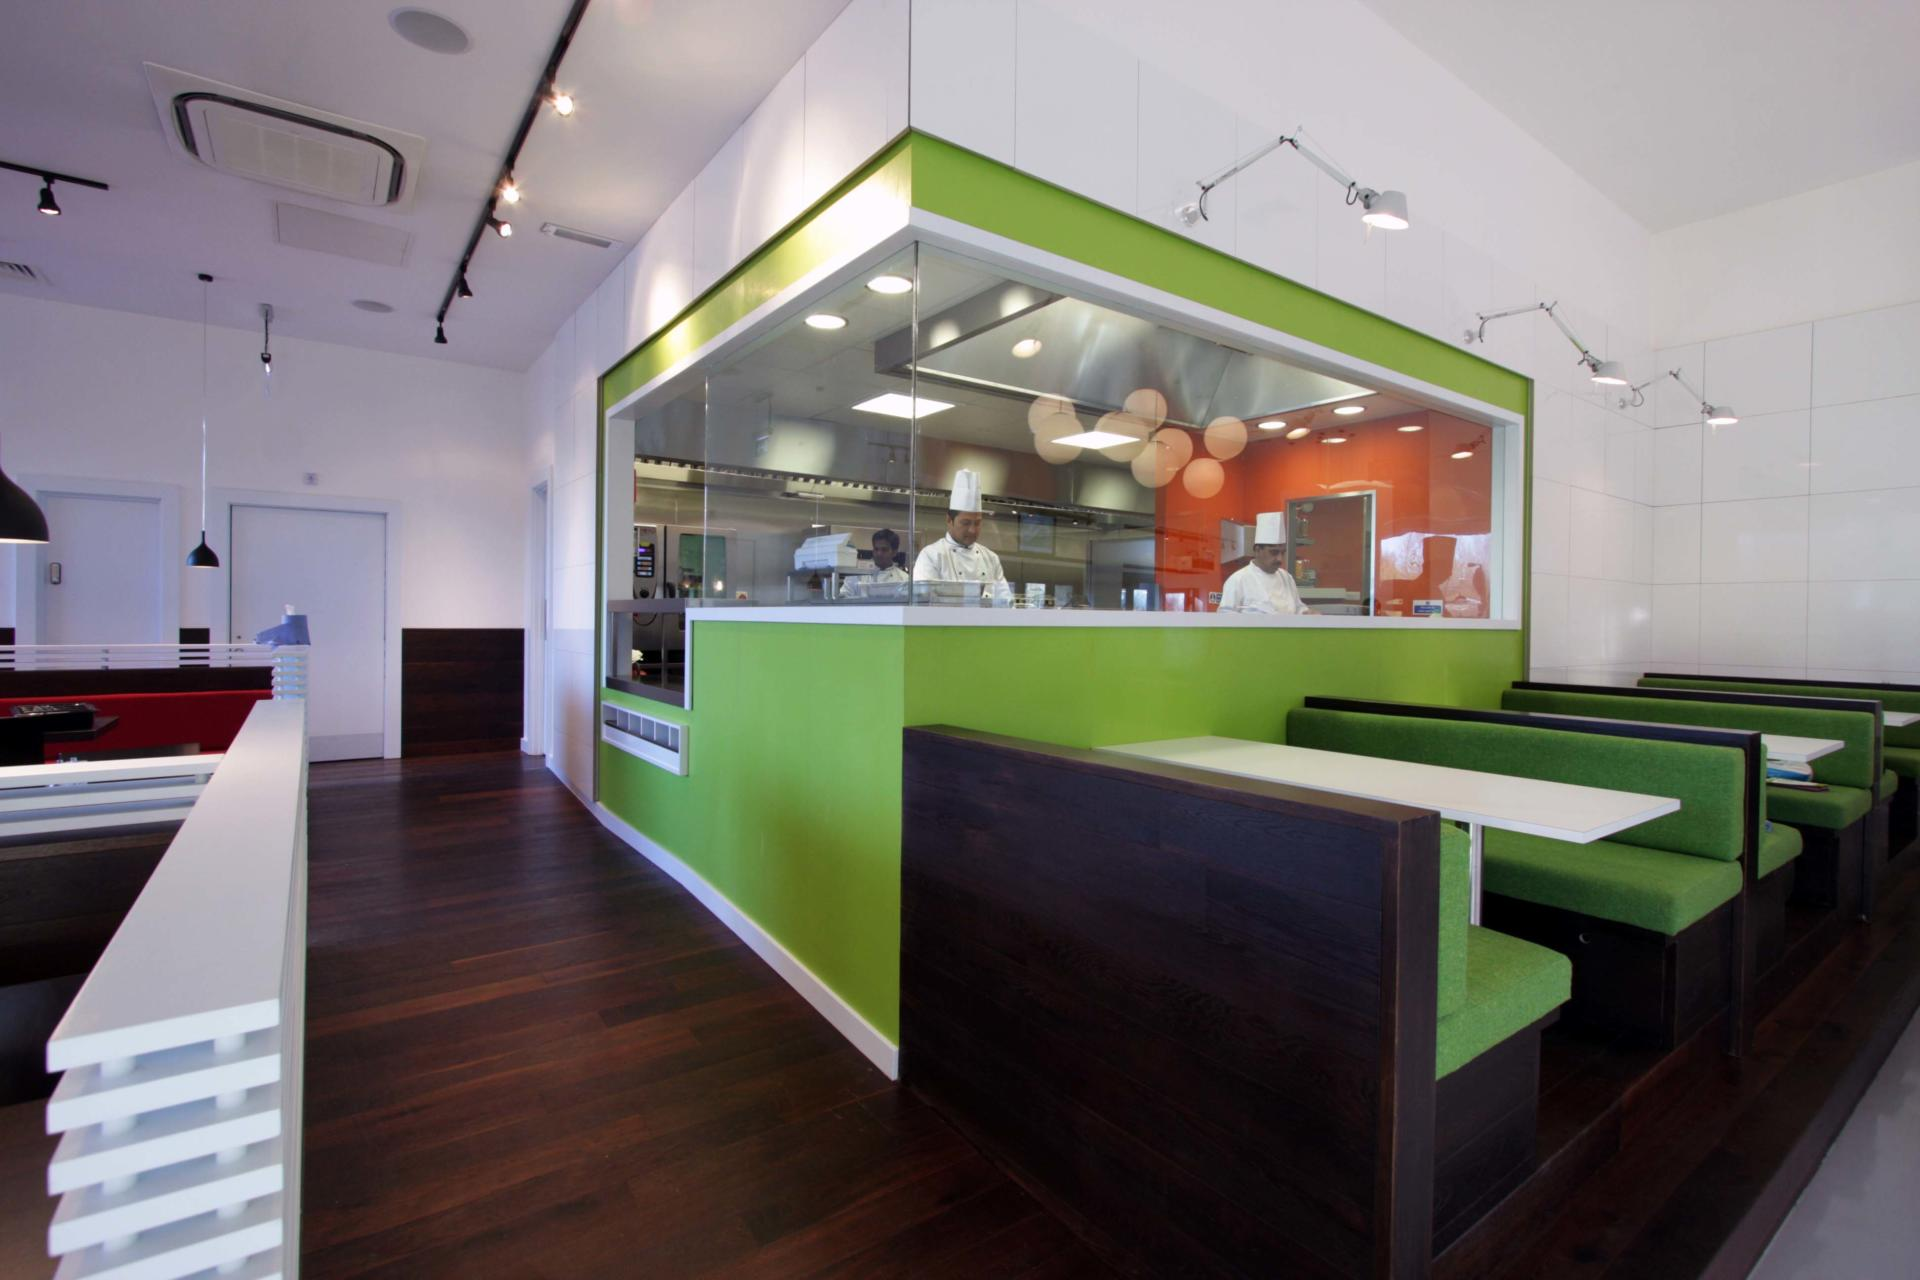 Oojam-Hemel-Hempstead-Indian-restaurant-and-kitchenFabrication-Stainless-Steel-Commercial-Kitchen-spacecatering_3